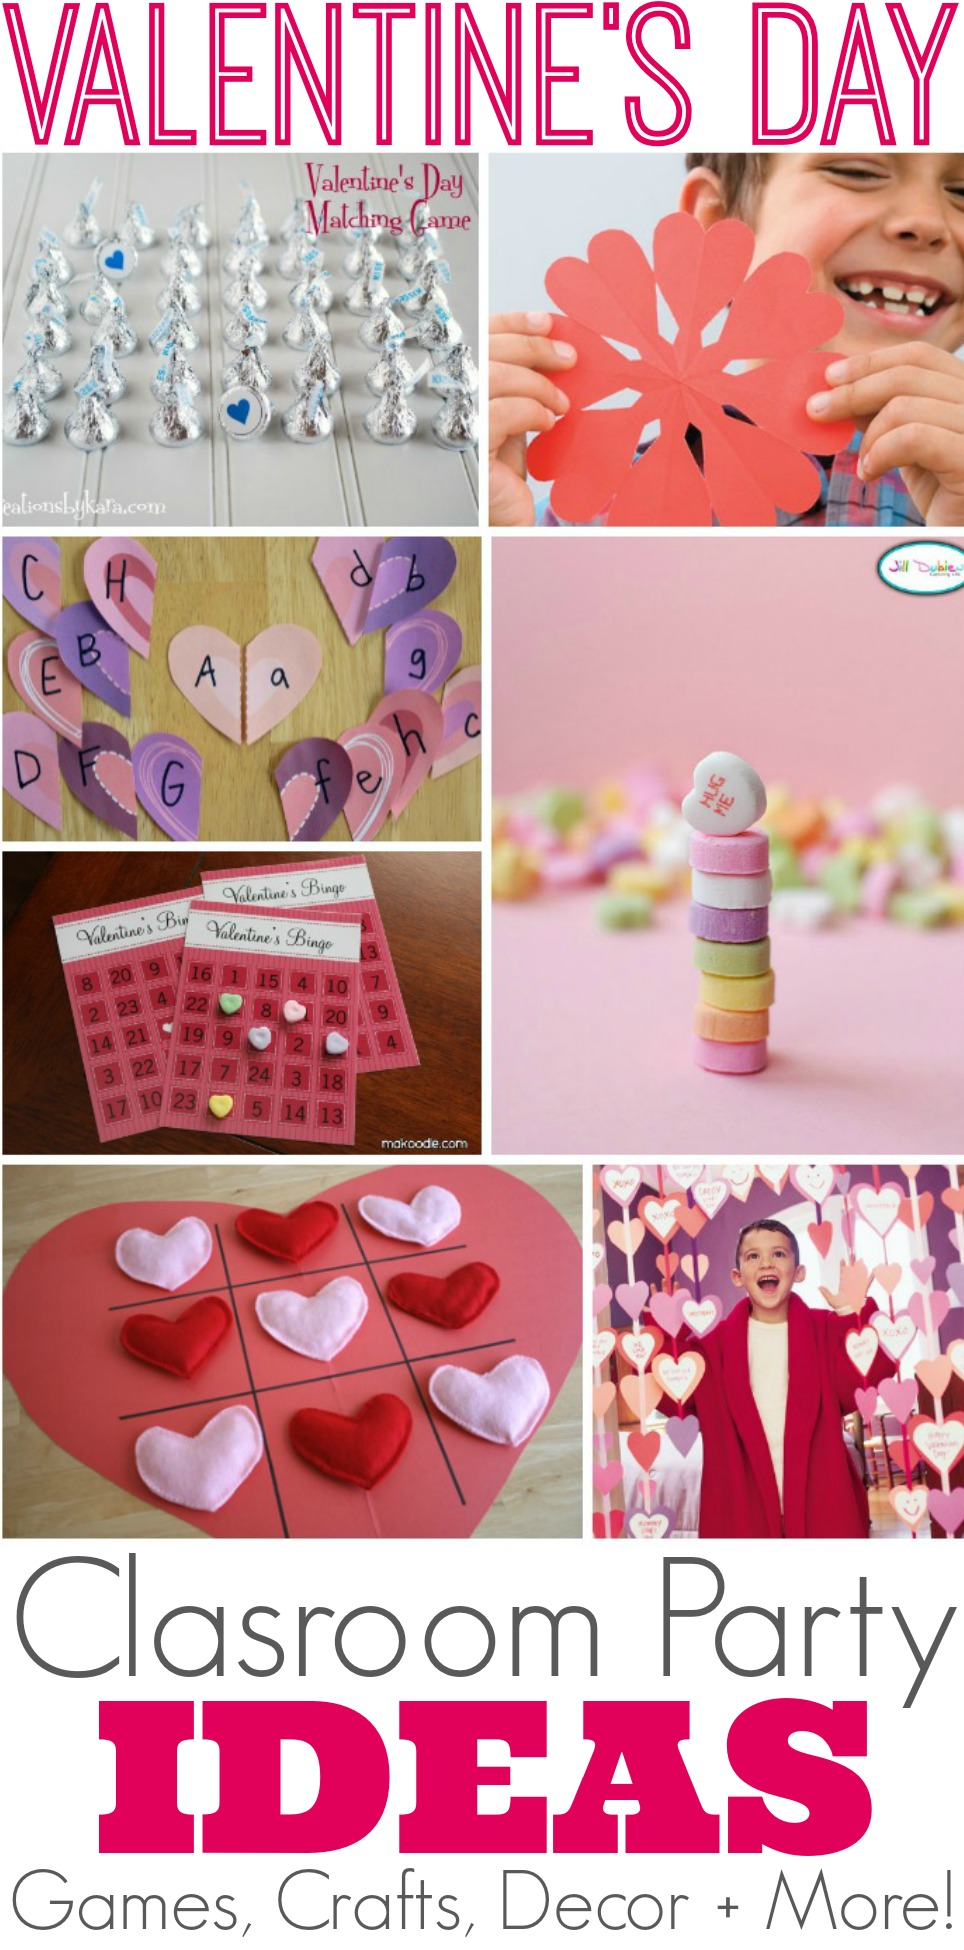 Classroom Party Ideas ~ Creative valentine s day class party ideas